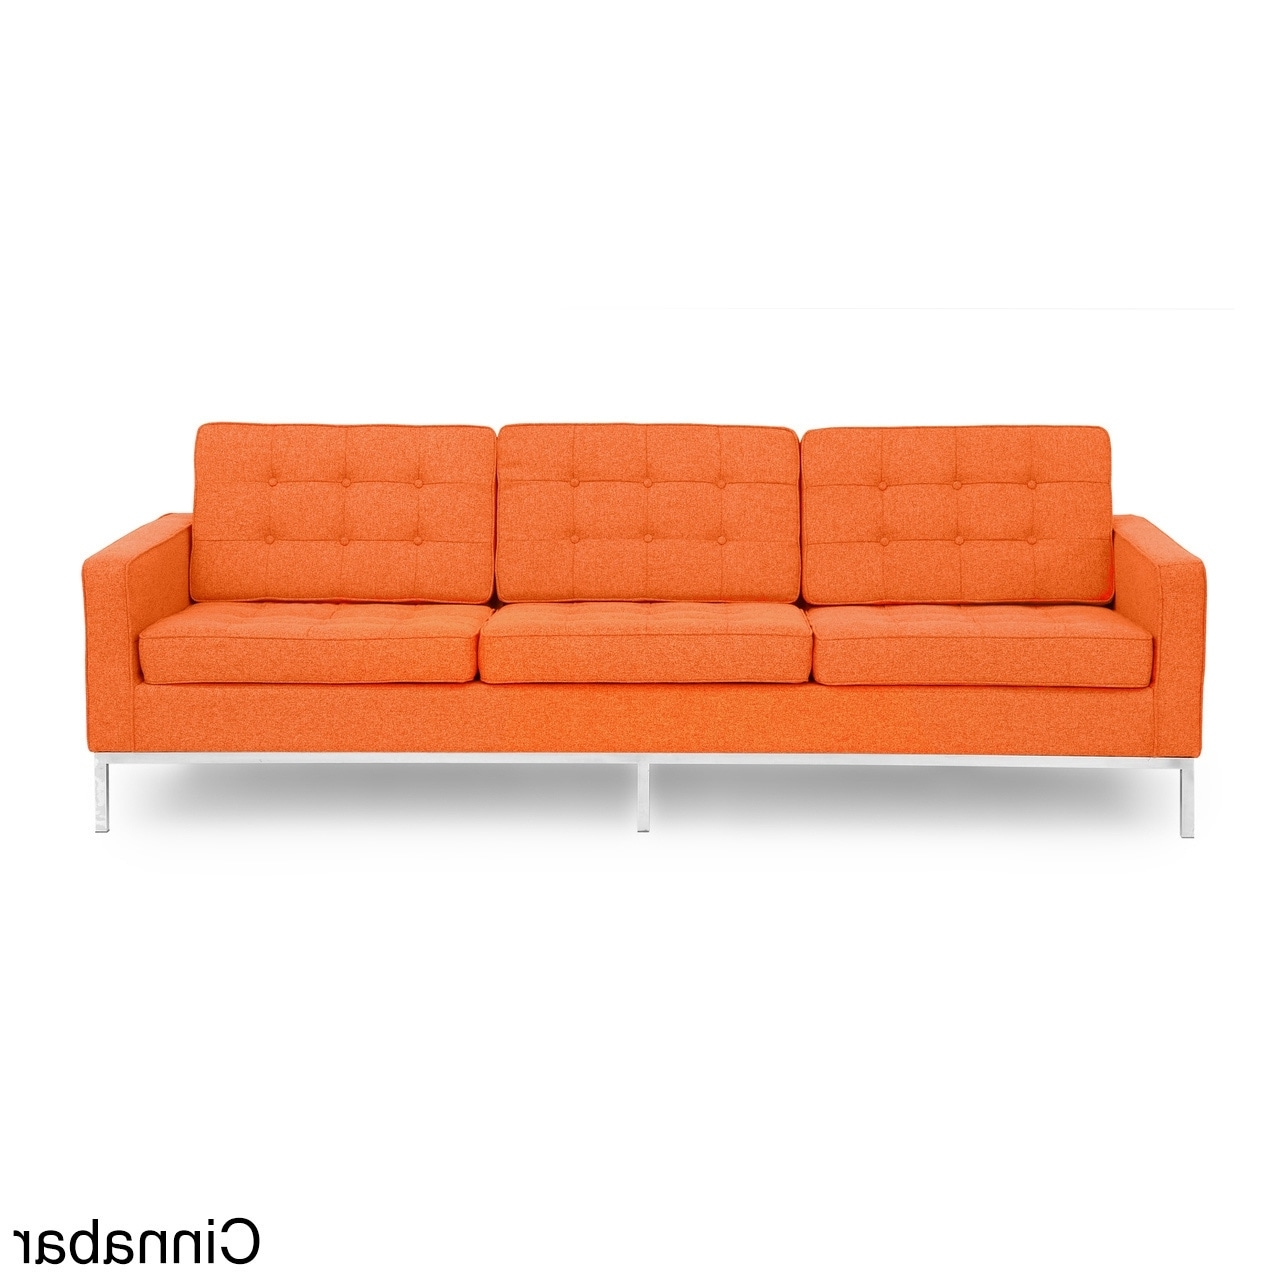 Kardiel Florence Knoll Style Sofa 3 Seat, Premium Fabric Intended For Preferred Florence Knoll Style Sofas (Gallery 11 of 20)